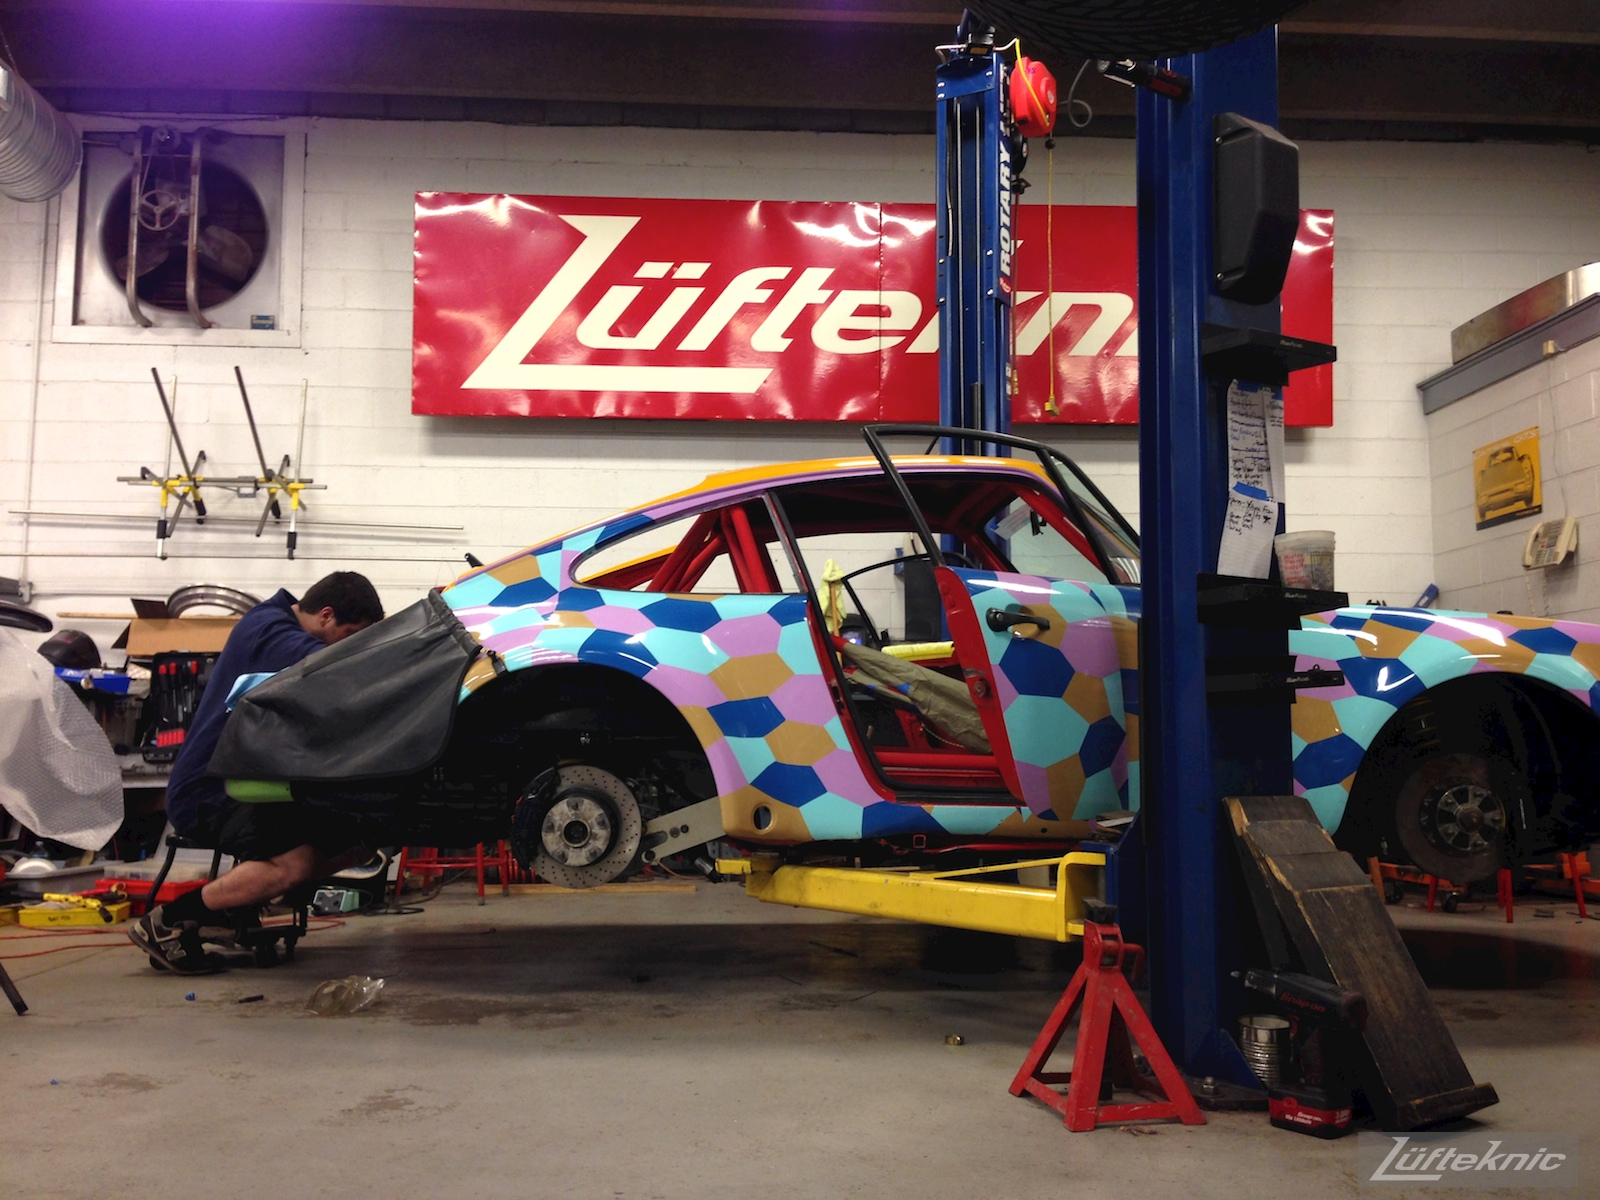 Lüfteknic #projectstuka Porsche 930 Turbo profile on the lift, with Lufteknic staff working on the engine